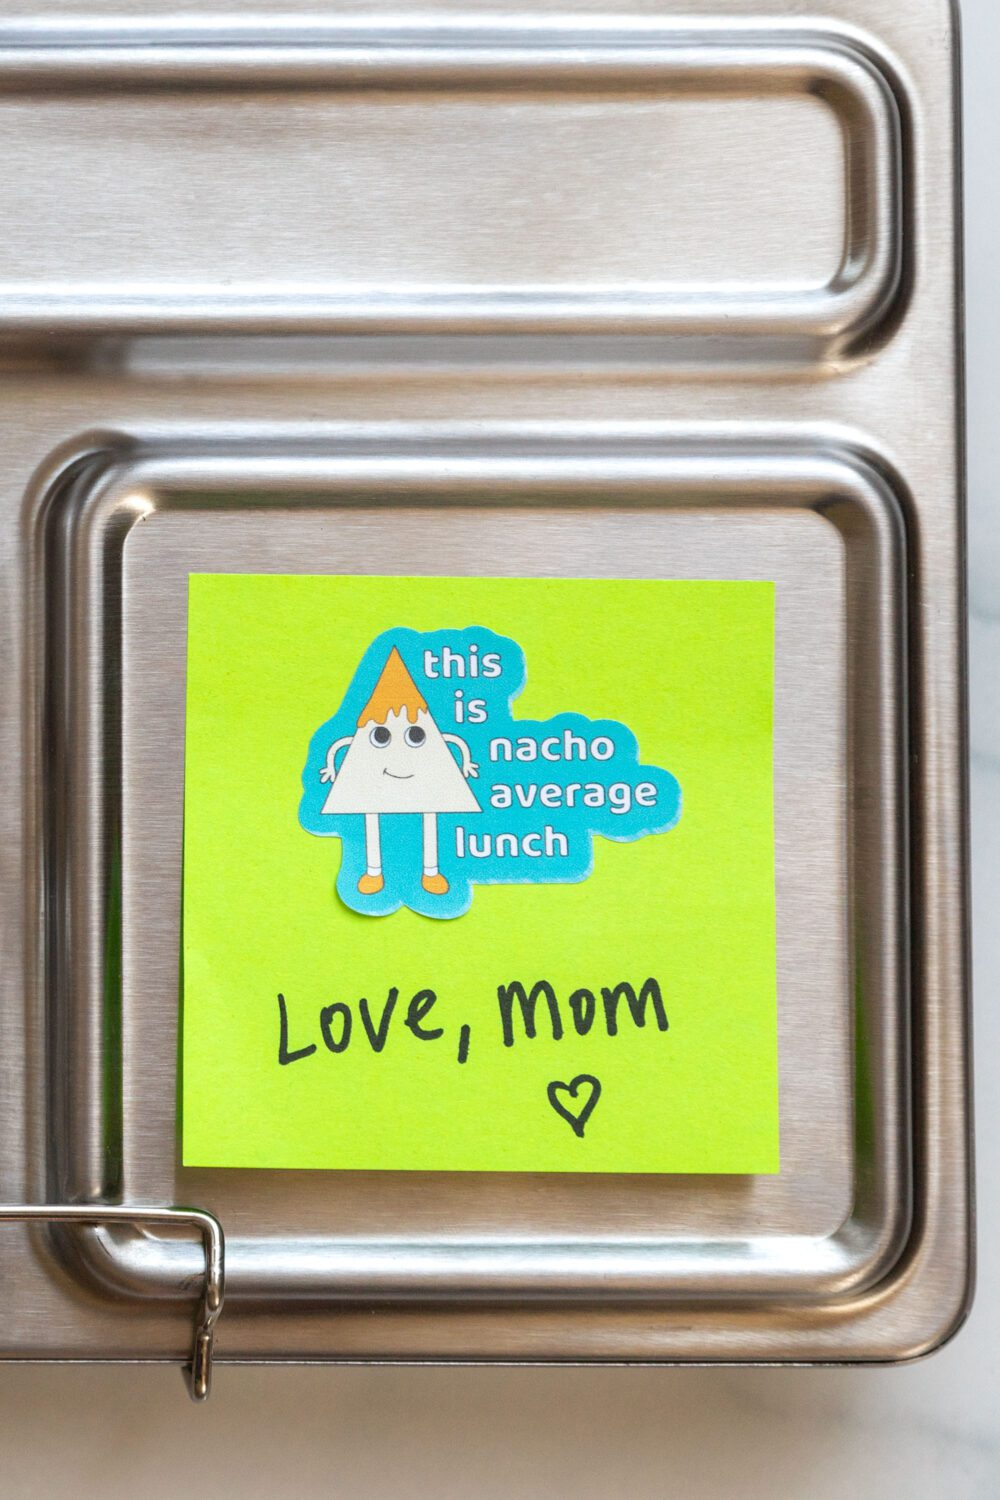 lunchbox note from mom with a sticker